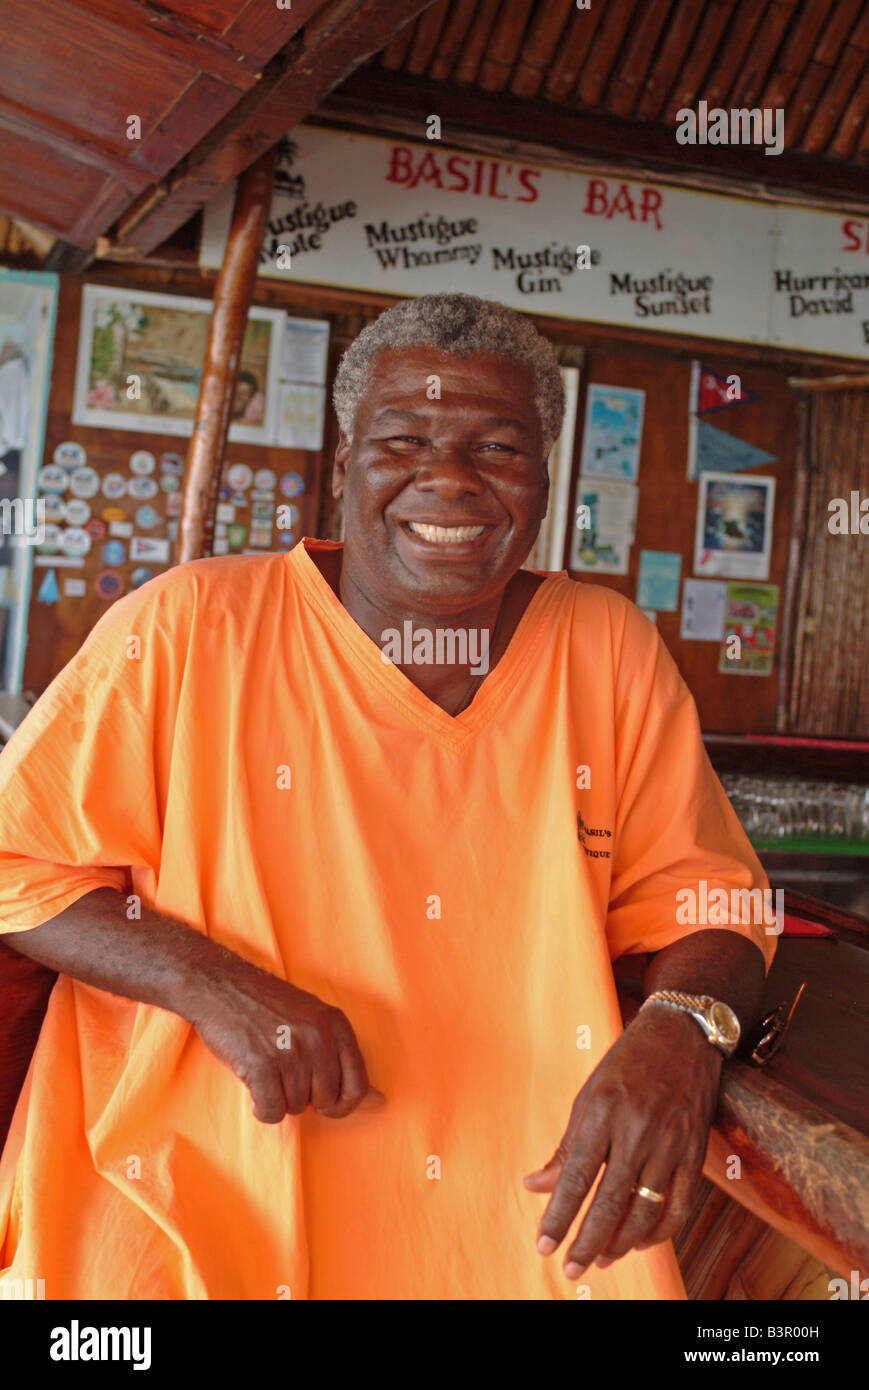 caribbean-west-indies-grenadines-mustique-basil-s-bar-owner-basil-B3R00H.jpg